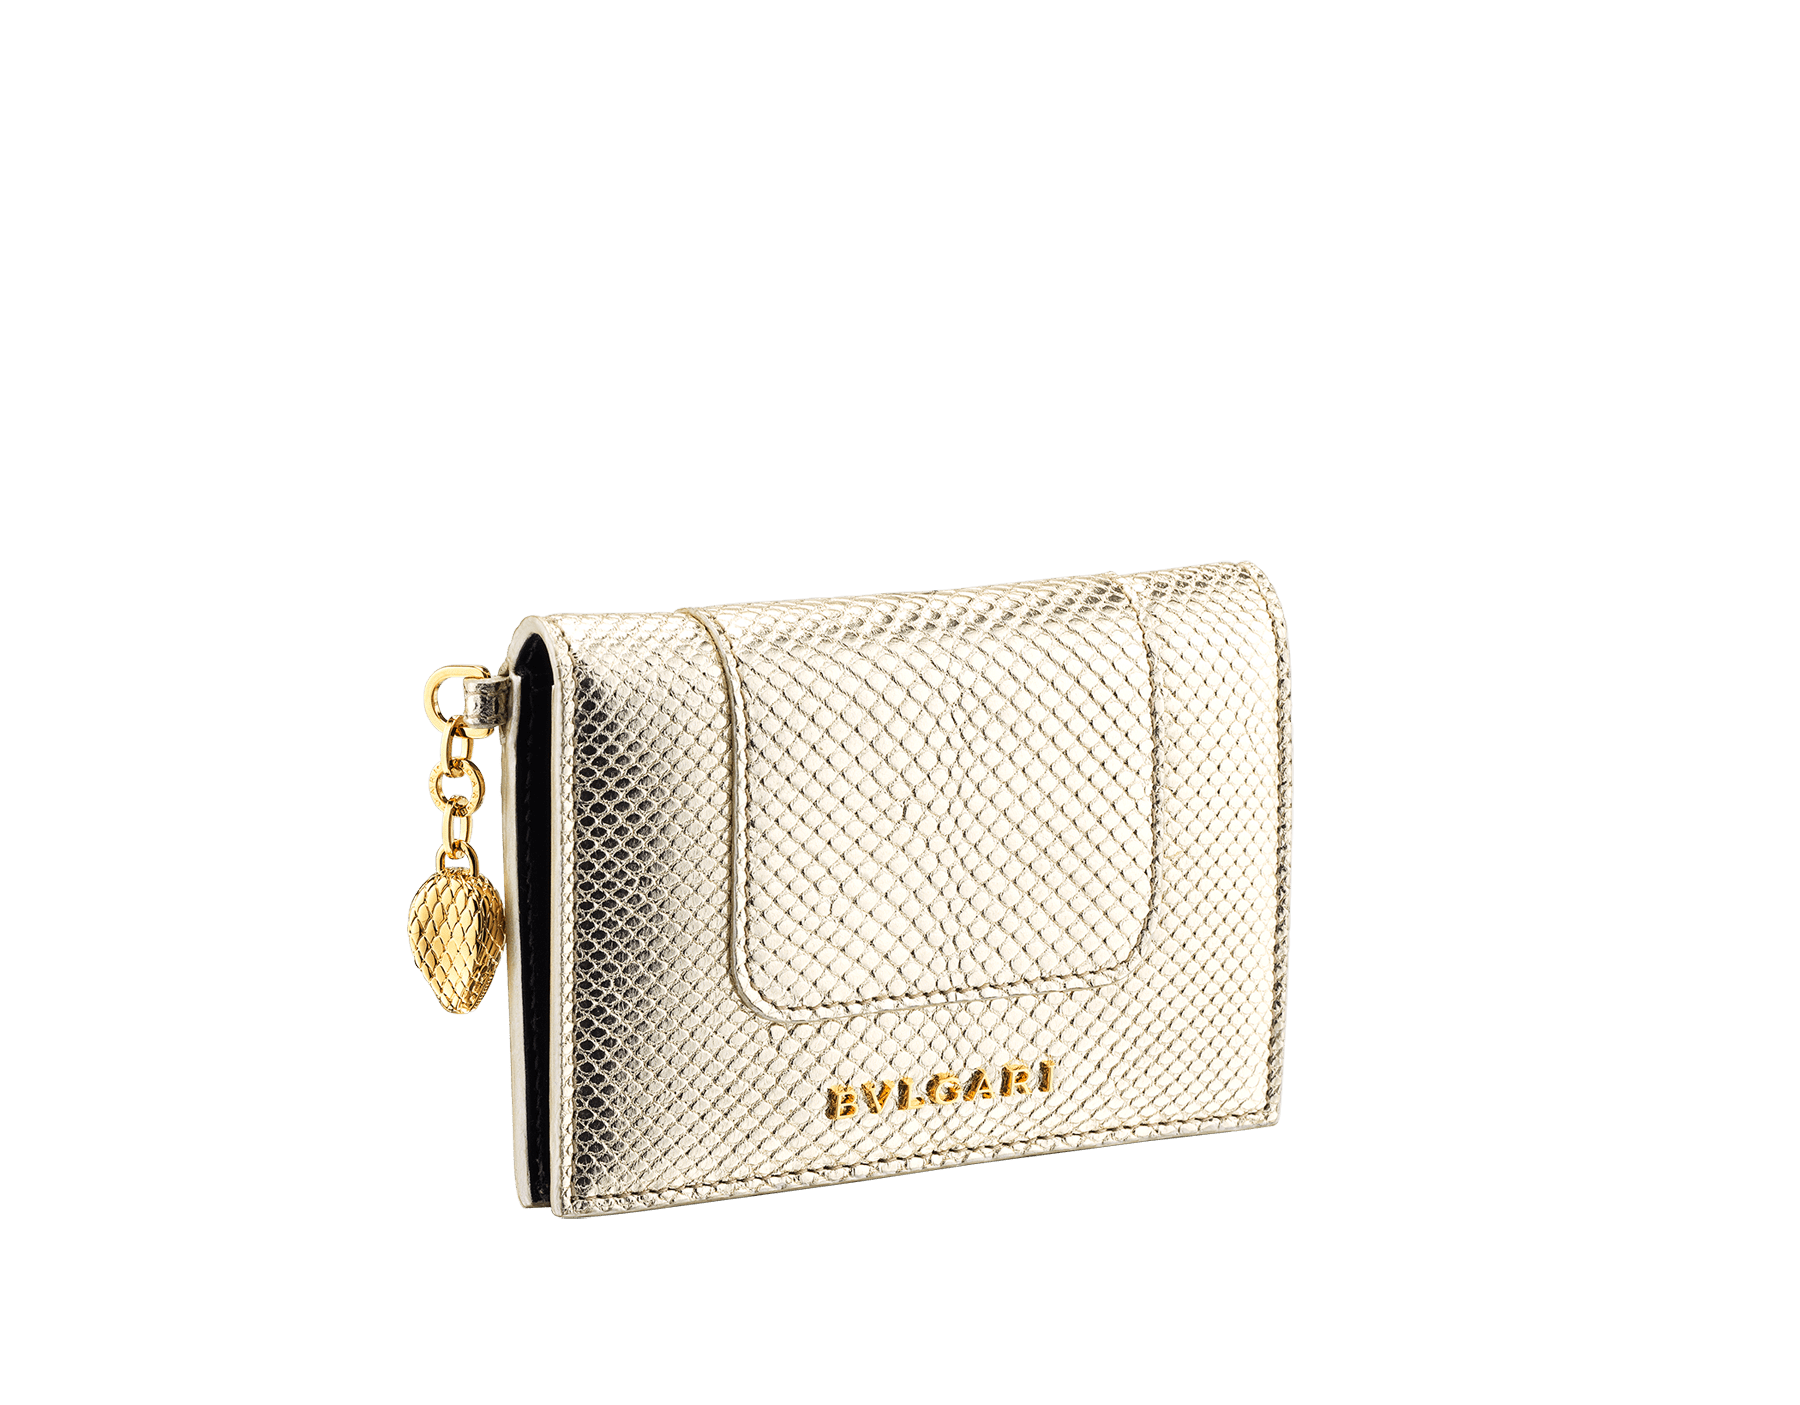 """Serpenti Forever"" folded card holder in ""Molten"" light gold karung skin and black calf leather. New Serpenti head charm in gold-plated brass, finished with red enamel eyes. 290948 image 1"